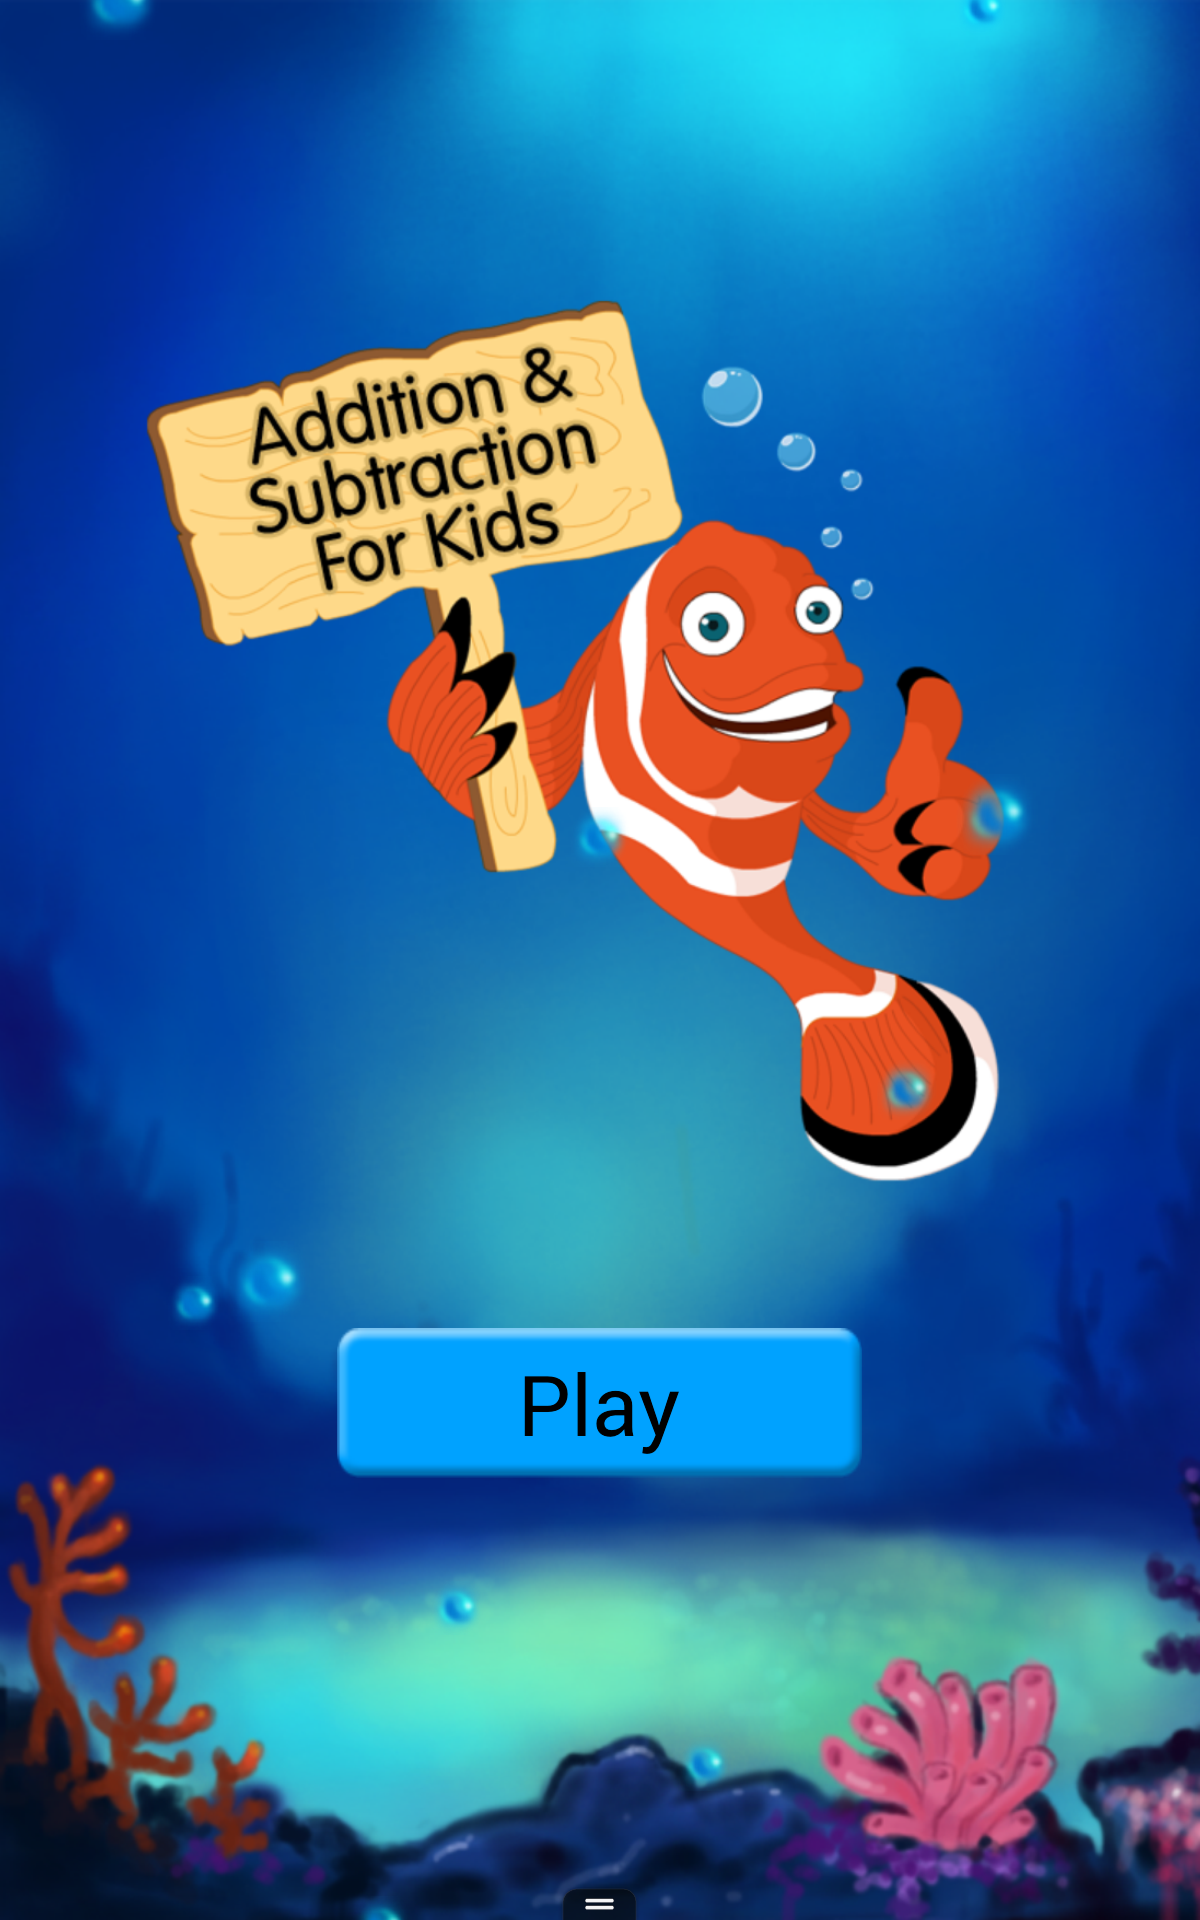 Amazon.com: Addition & Subtraction For Kids: Appstore for Android